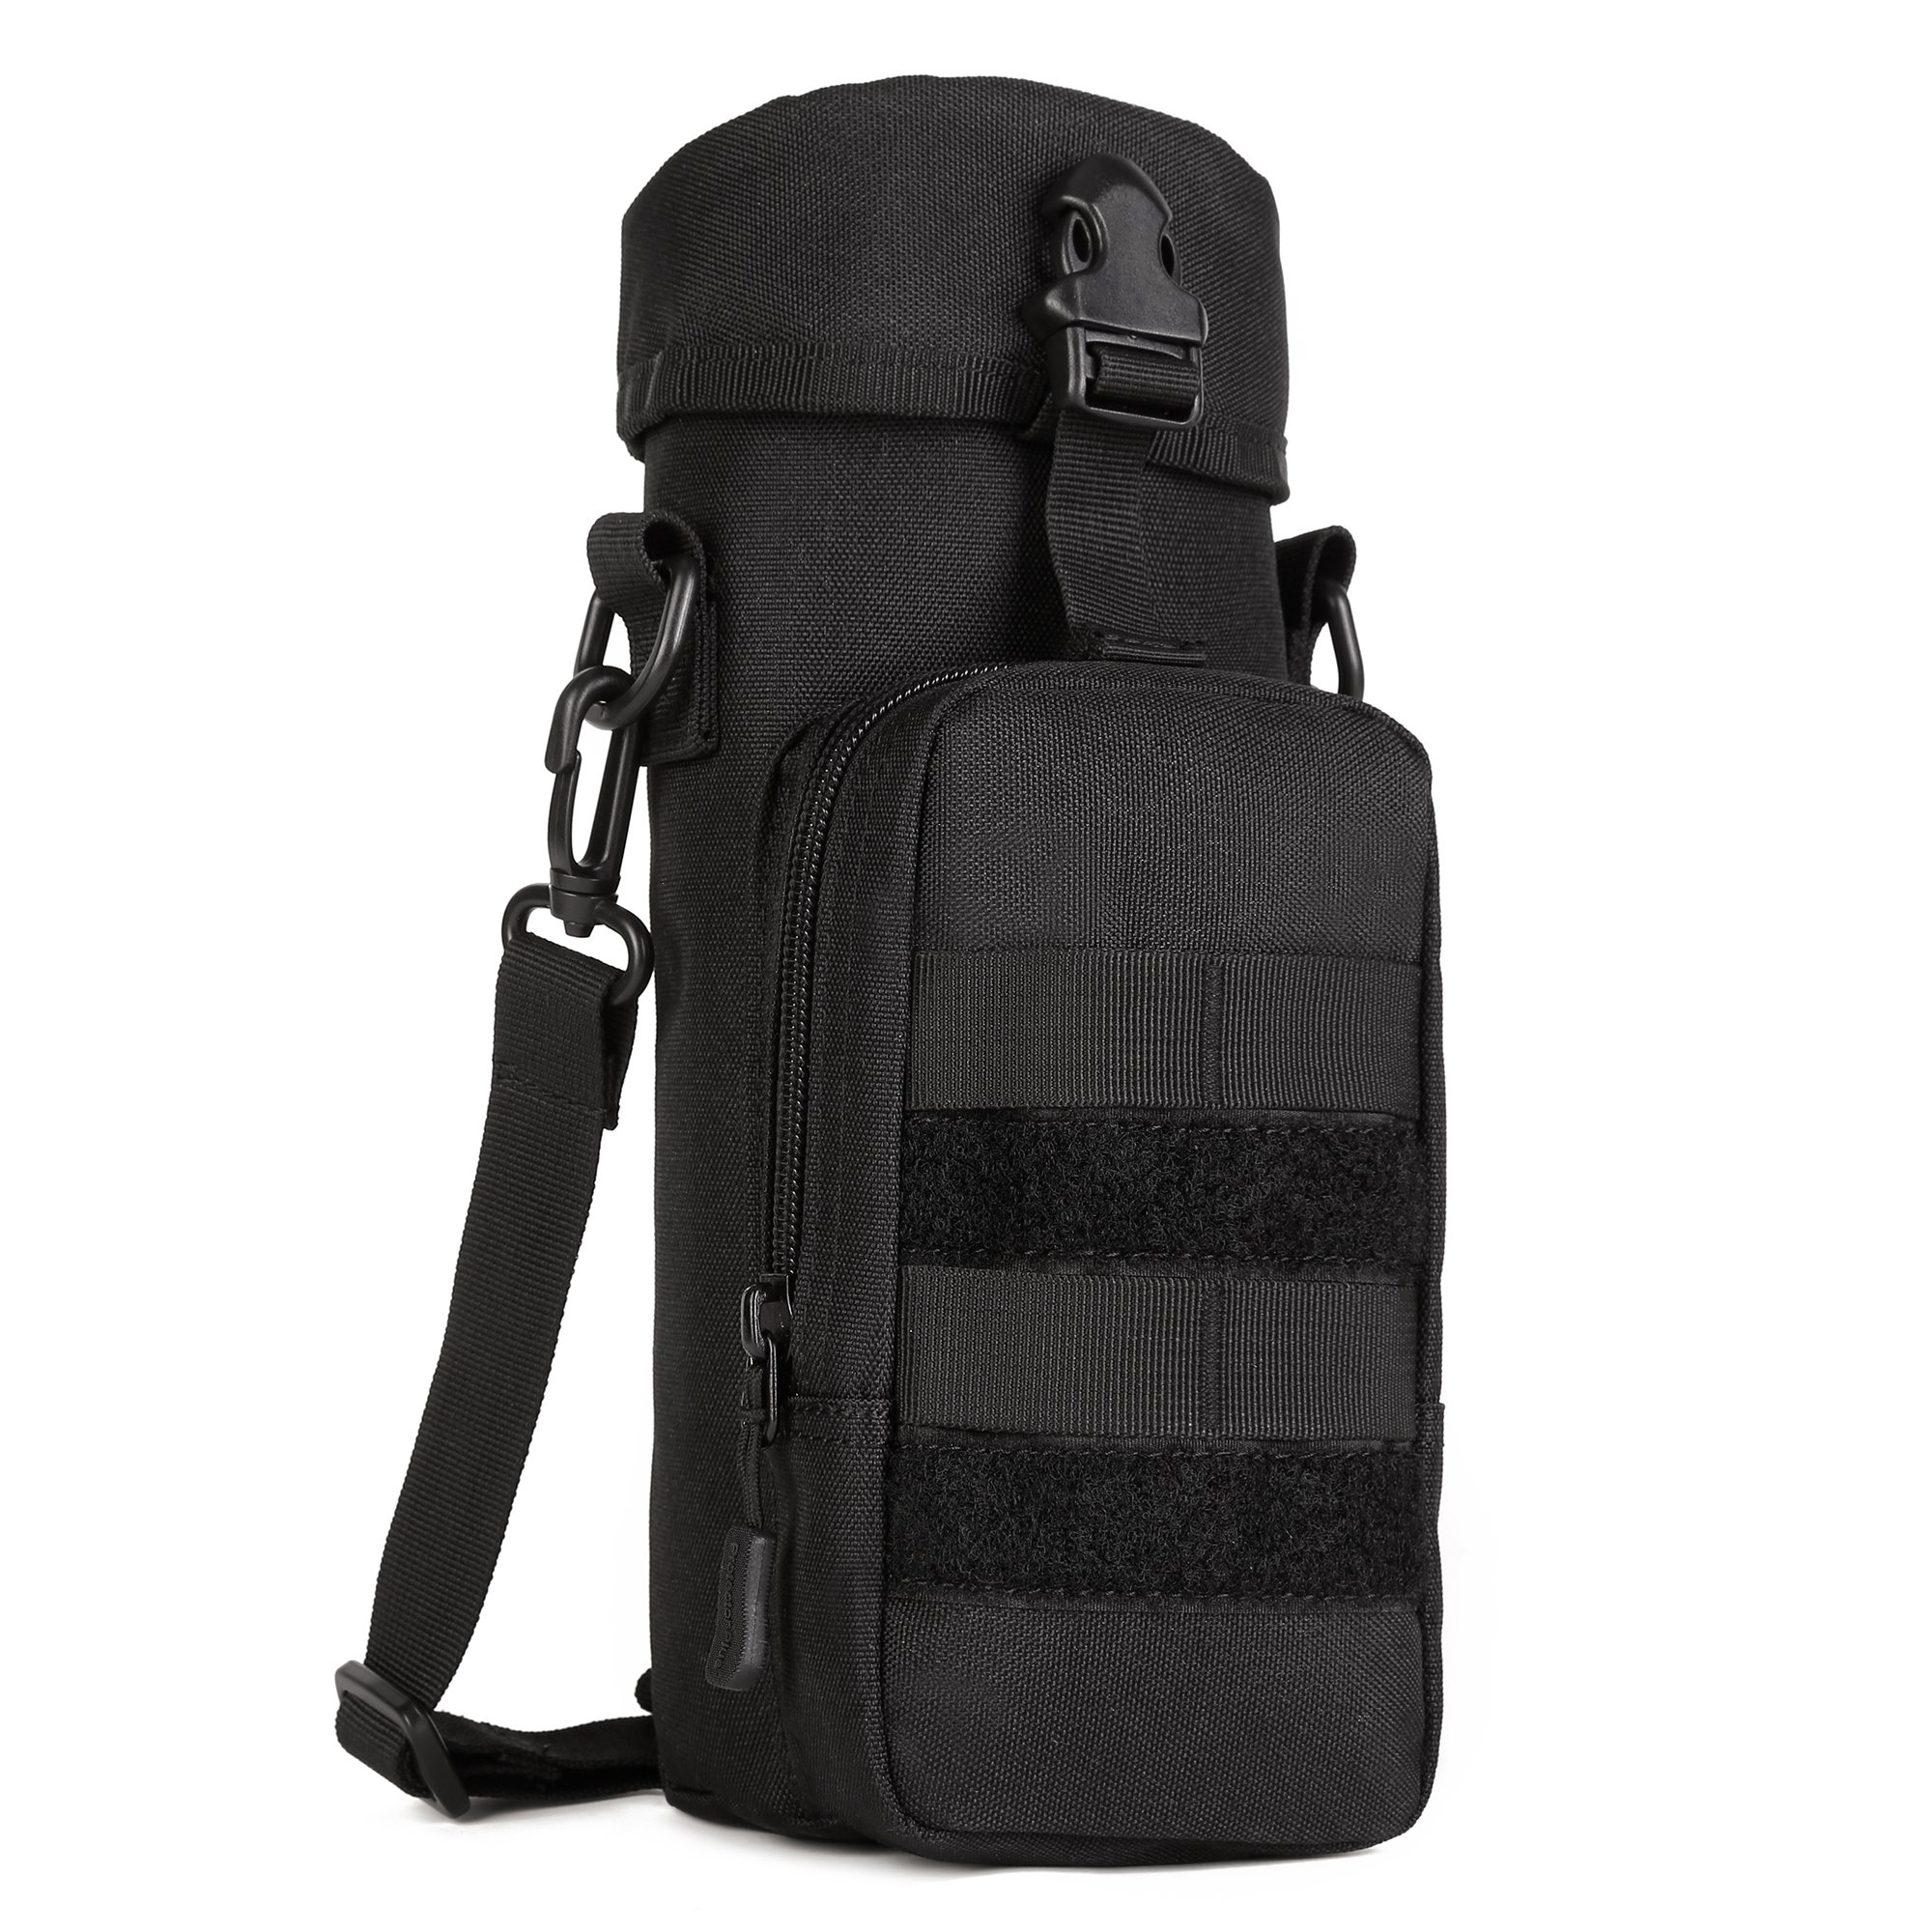 ArcEnCiel Molle Water Bottle Pouch Tactical Military Kettle Set Holder Hydration Bag Carrier Pocket for Camping Climbing Cycling Hiking Travelling